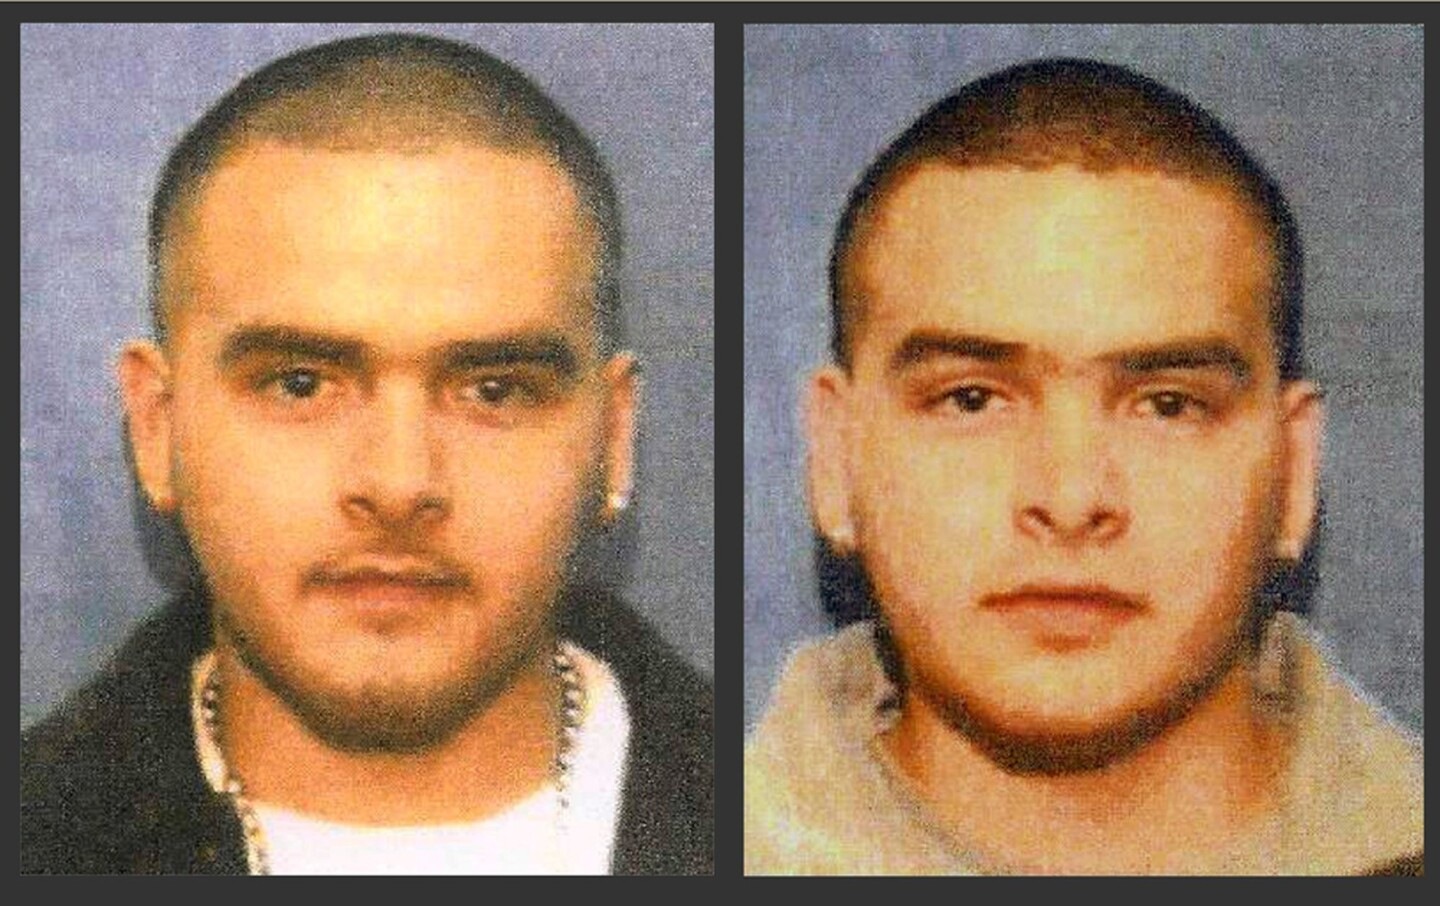 Chicago twins Pedro Flores, left, and Margarito Flores, in undated photos. The brothers have testified on behalf of the prosecution, saying they operated a massive smuggling way station in Chicago, distributing cocaine and drugs around the United States by rail and truck, often smuggled in vegetable loads.